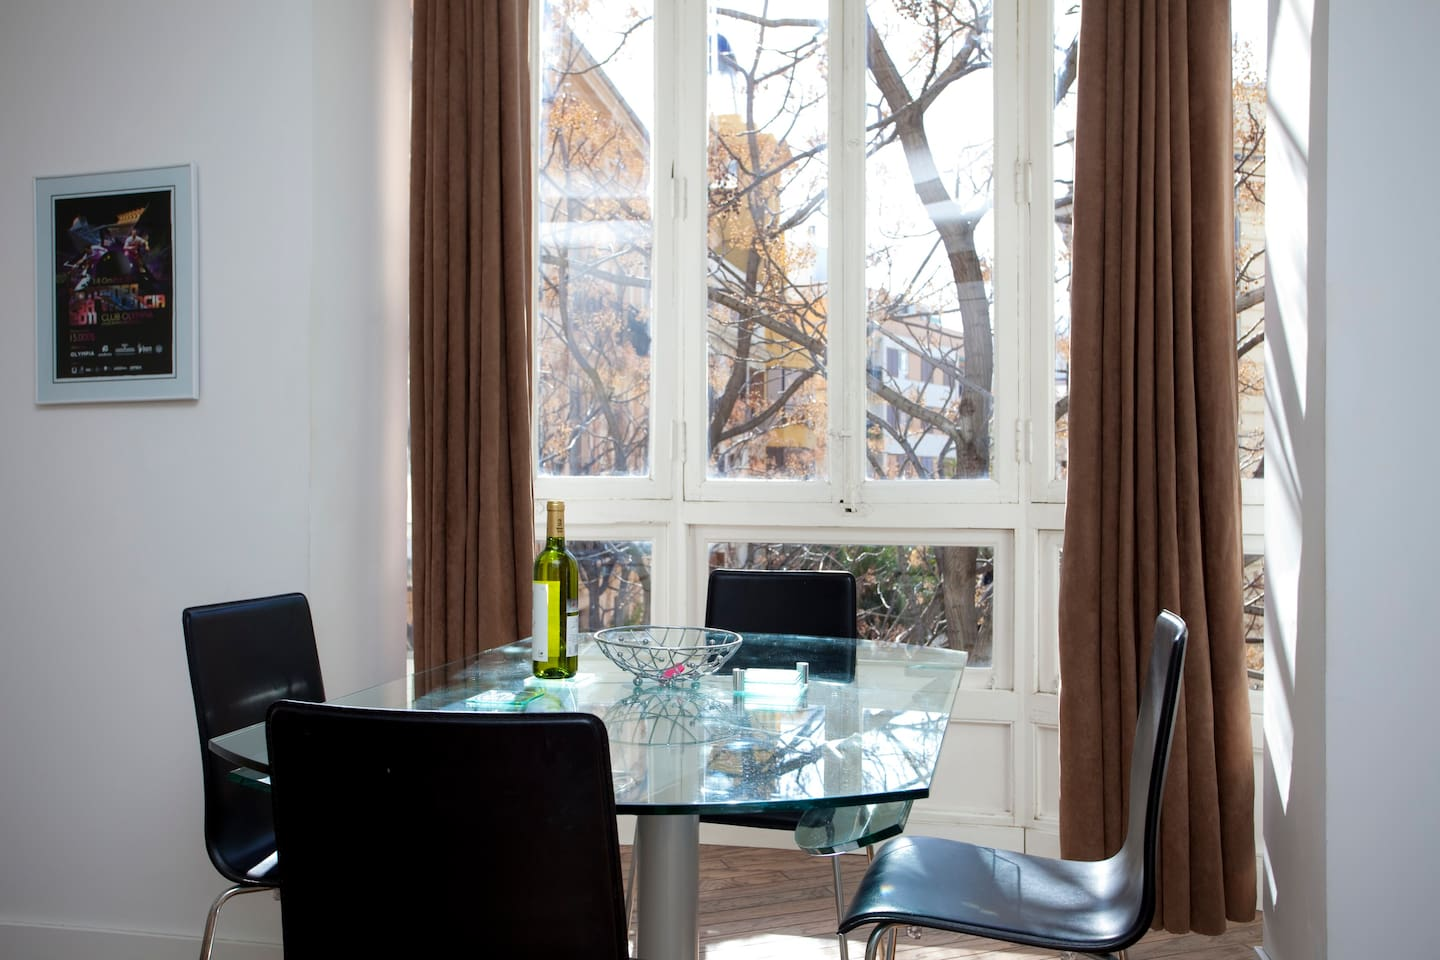 Dining area that overlooks the street below